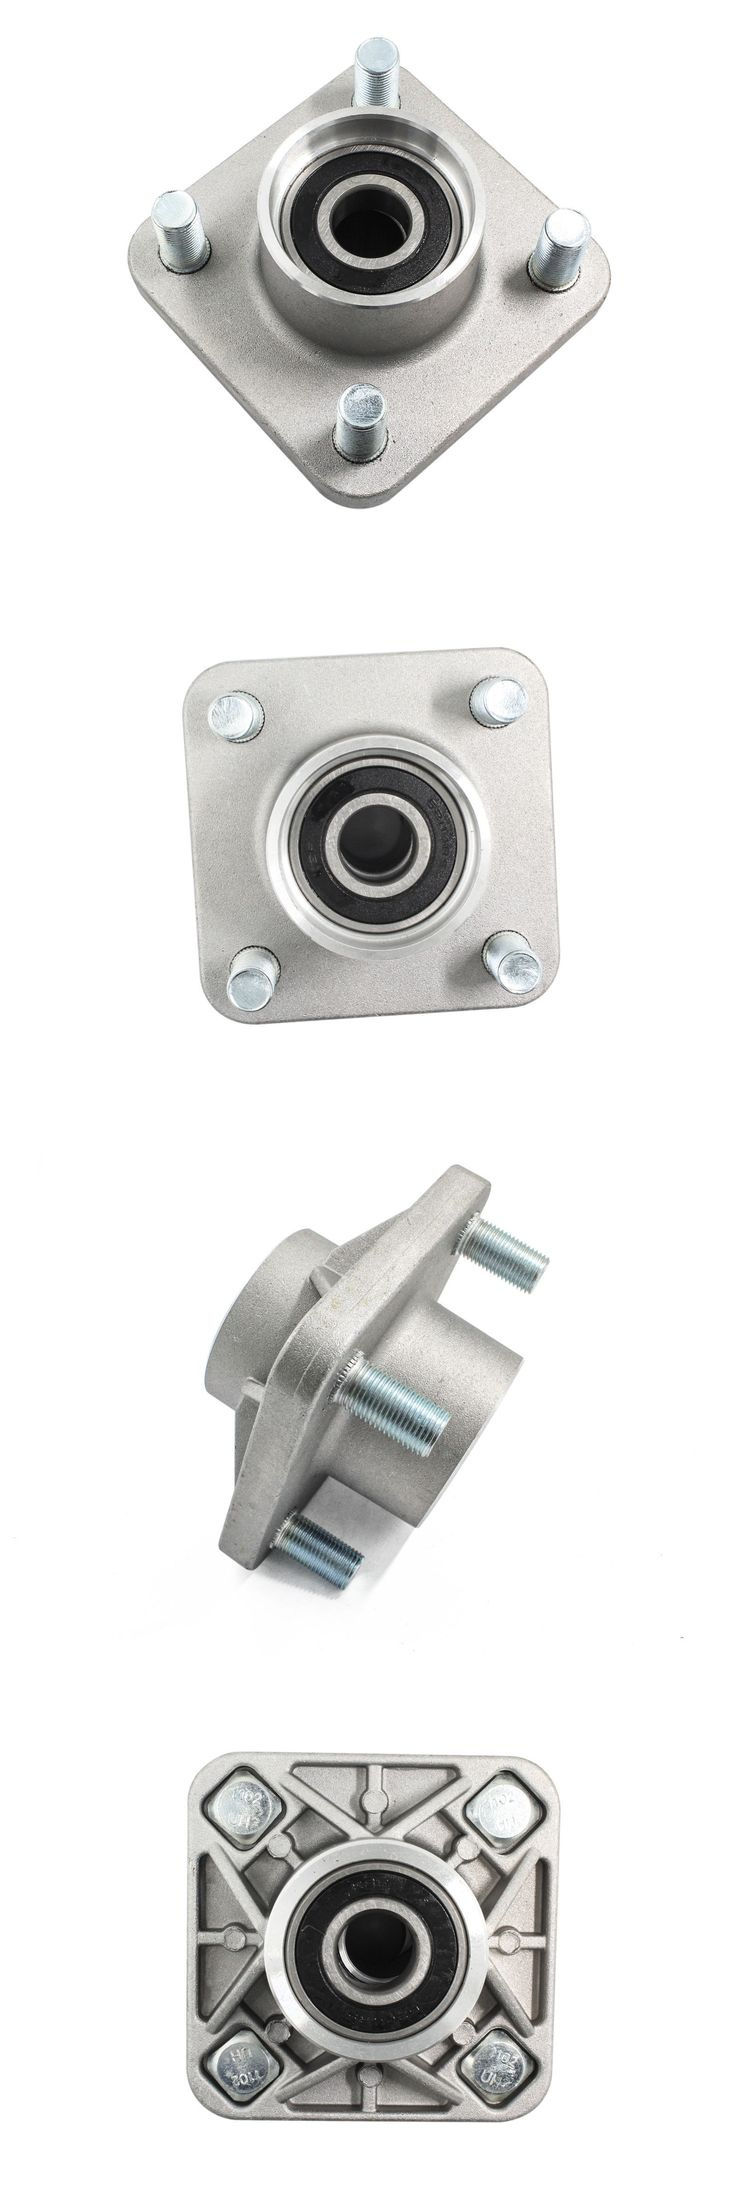 Push-Pull Golf Cart Parts 181154: New 102357701 Club Car Ds Precedent Front Wheel Hub Assembly (2003-Up) Golf Cart -> BUY IT NOW ONLY: $40.99 on eBay!